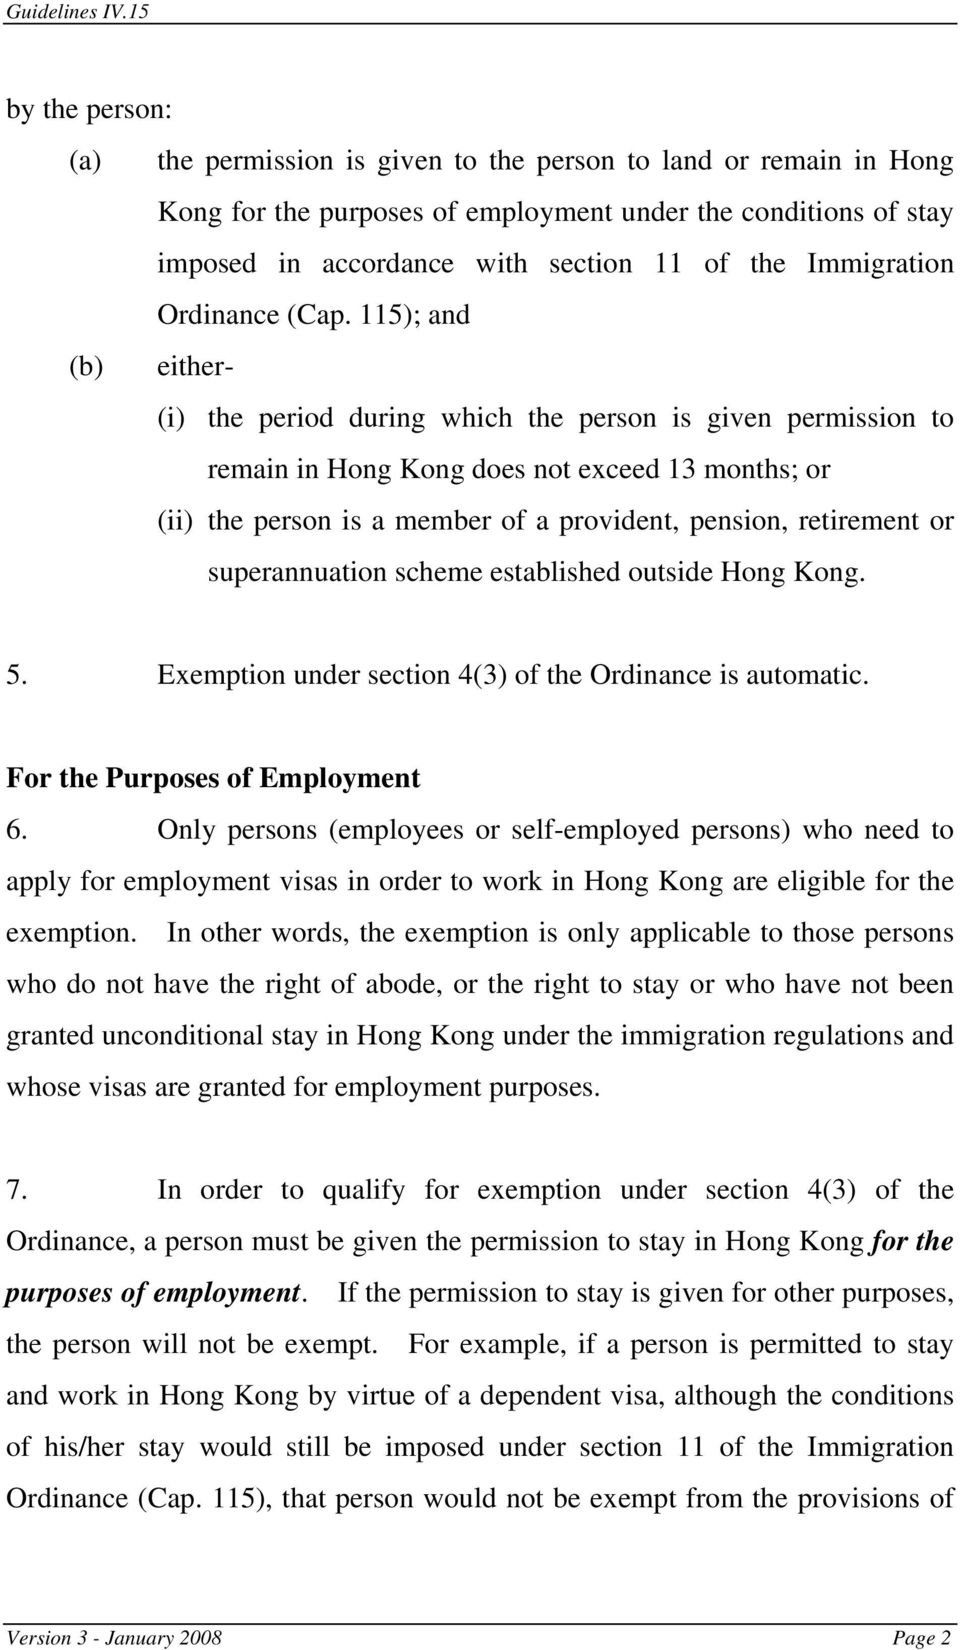 115); and (b) either- (i) the period during which the person is given permission to remain in Hong Kong does not exceed 13 months; or (ii) the person is a member of a provident, pension, retirement